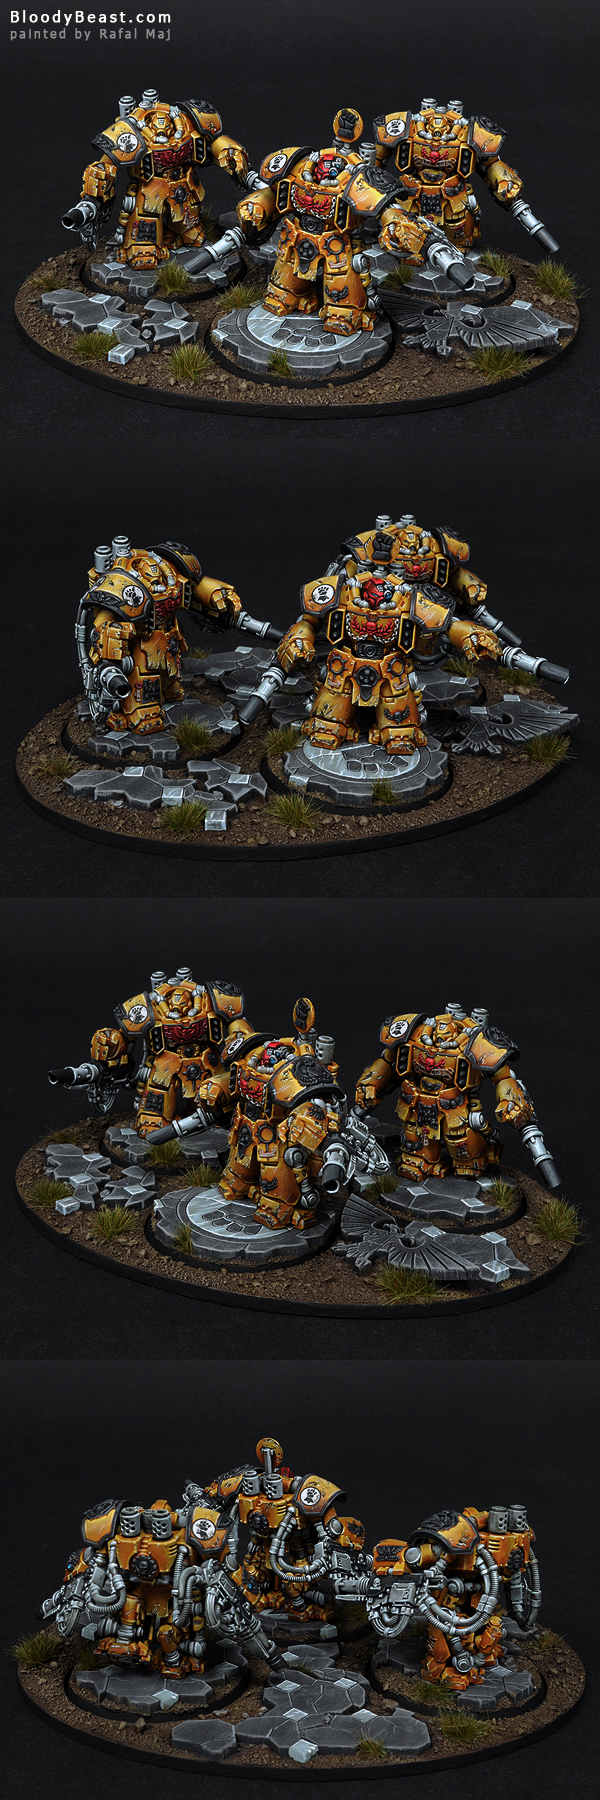 Imperial Fists Centurion Devastator Squad painted by Rafal Maj (BloodyBeast.com)